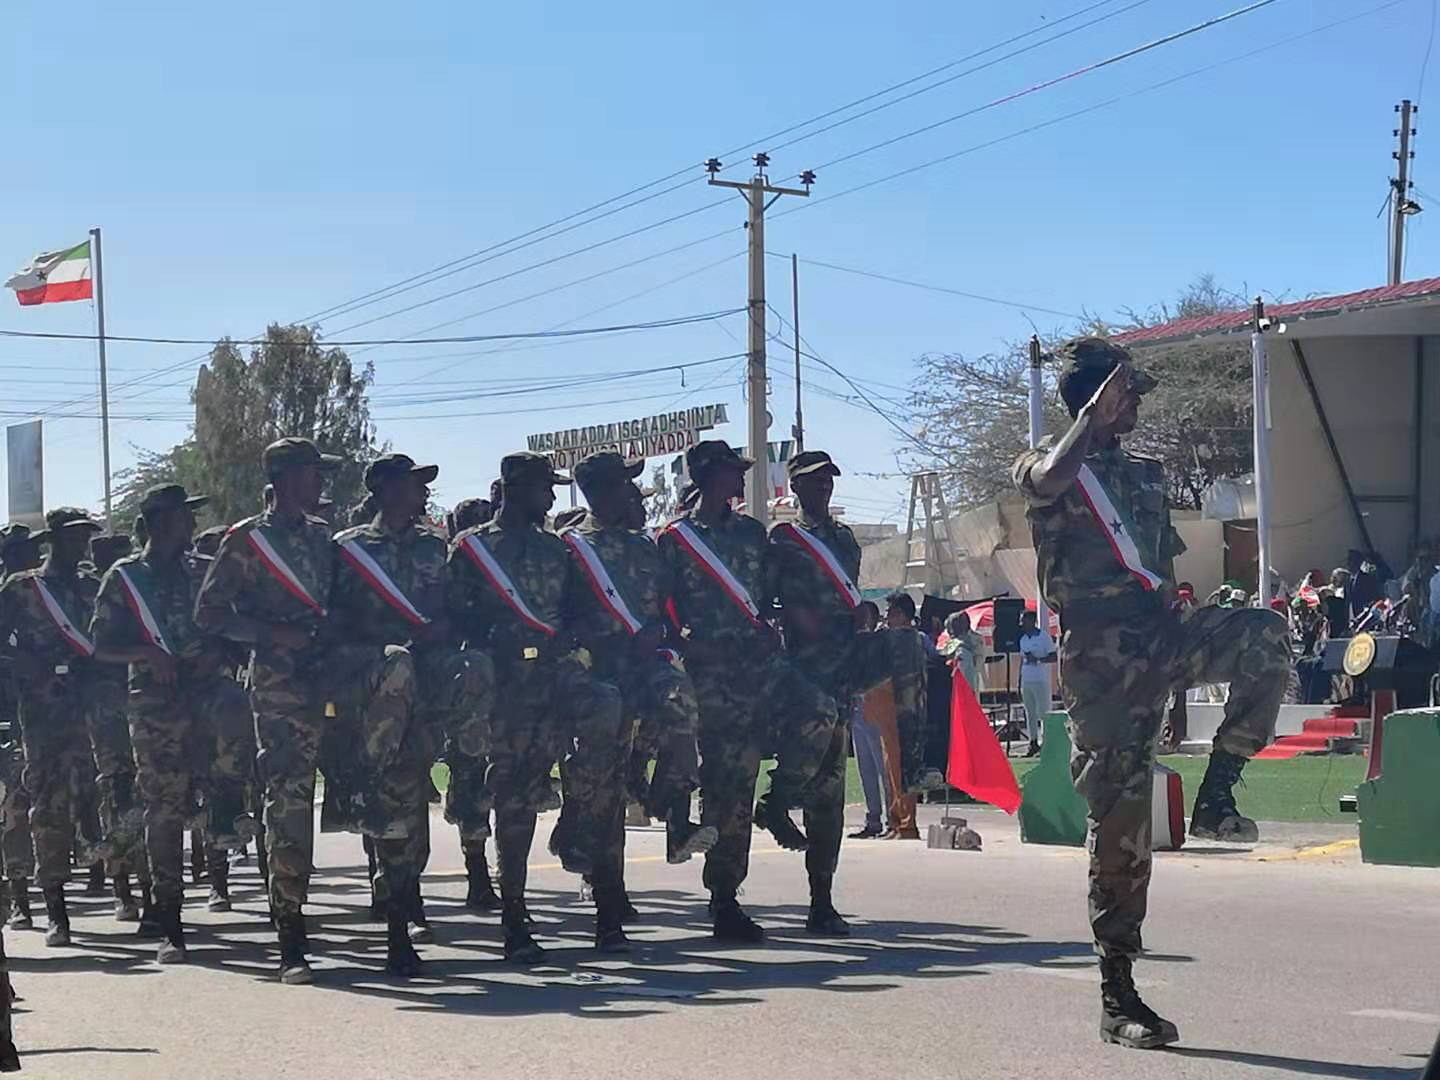 Infantry walking during Somaliland Independence Day Parade